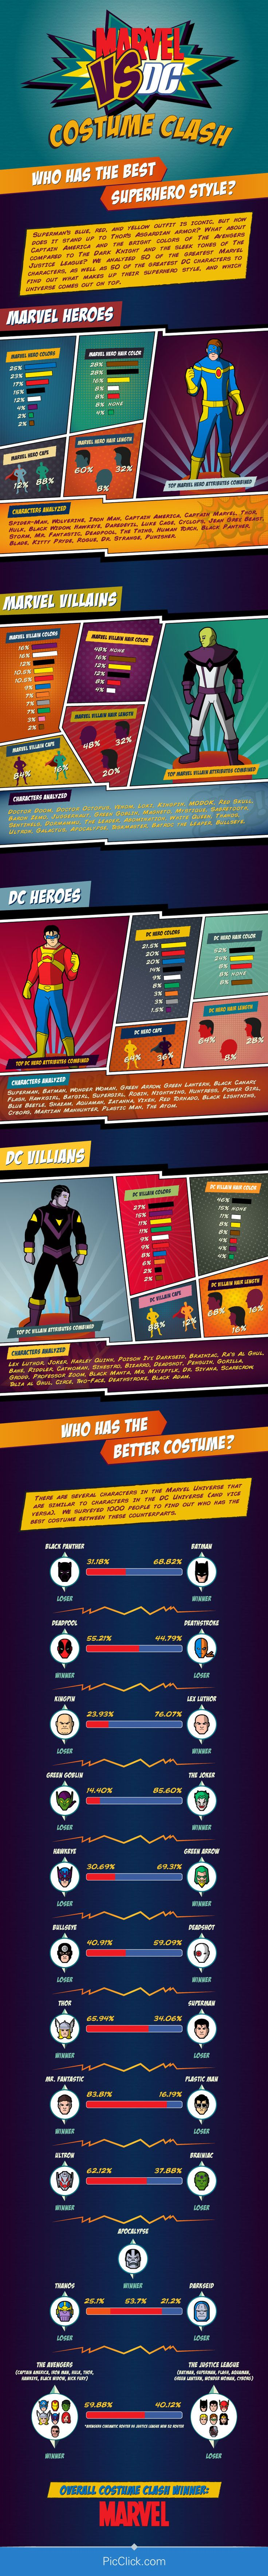 Visual shopping site PicClick.com analyzed the 50 most popular Marvel and DC Comics superheroes for their costume choices and set up heroes with similar styles to go head-to-head for the ultimate fashion showdown.